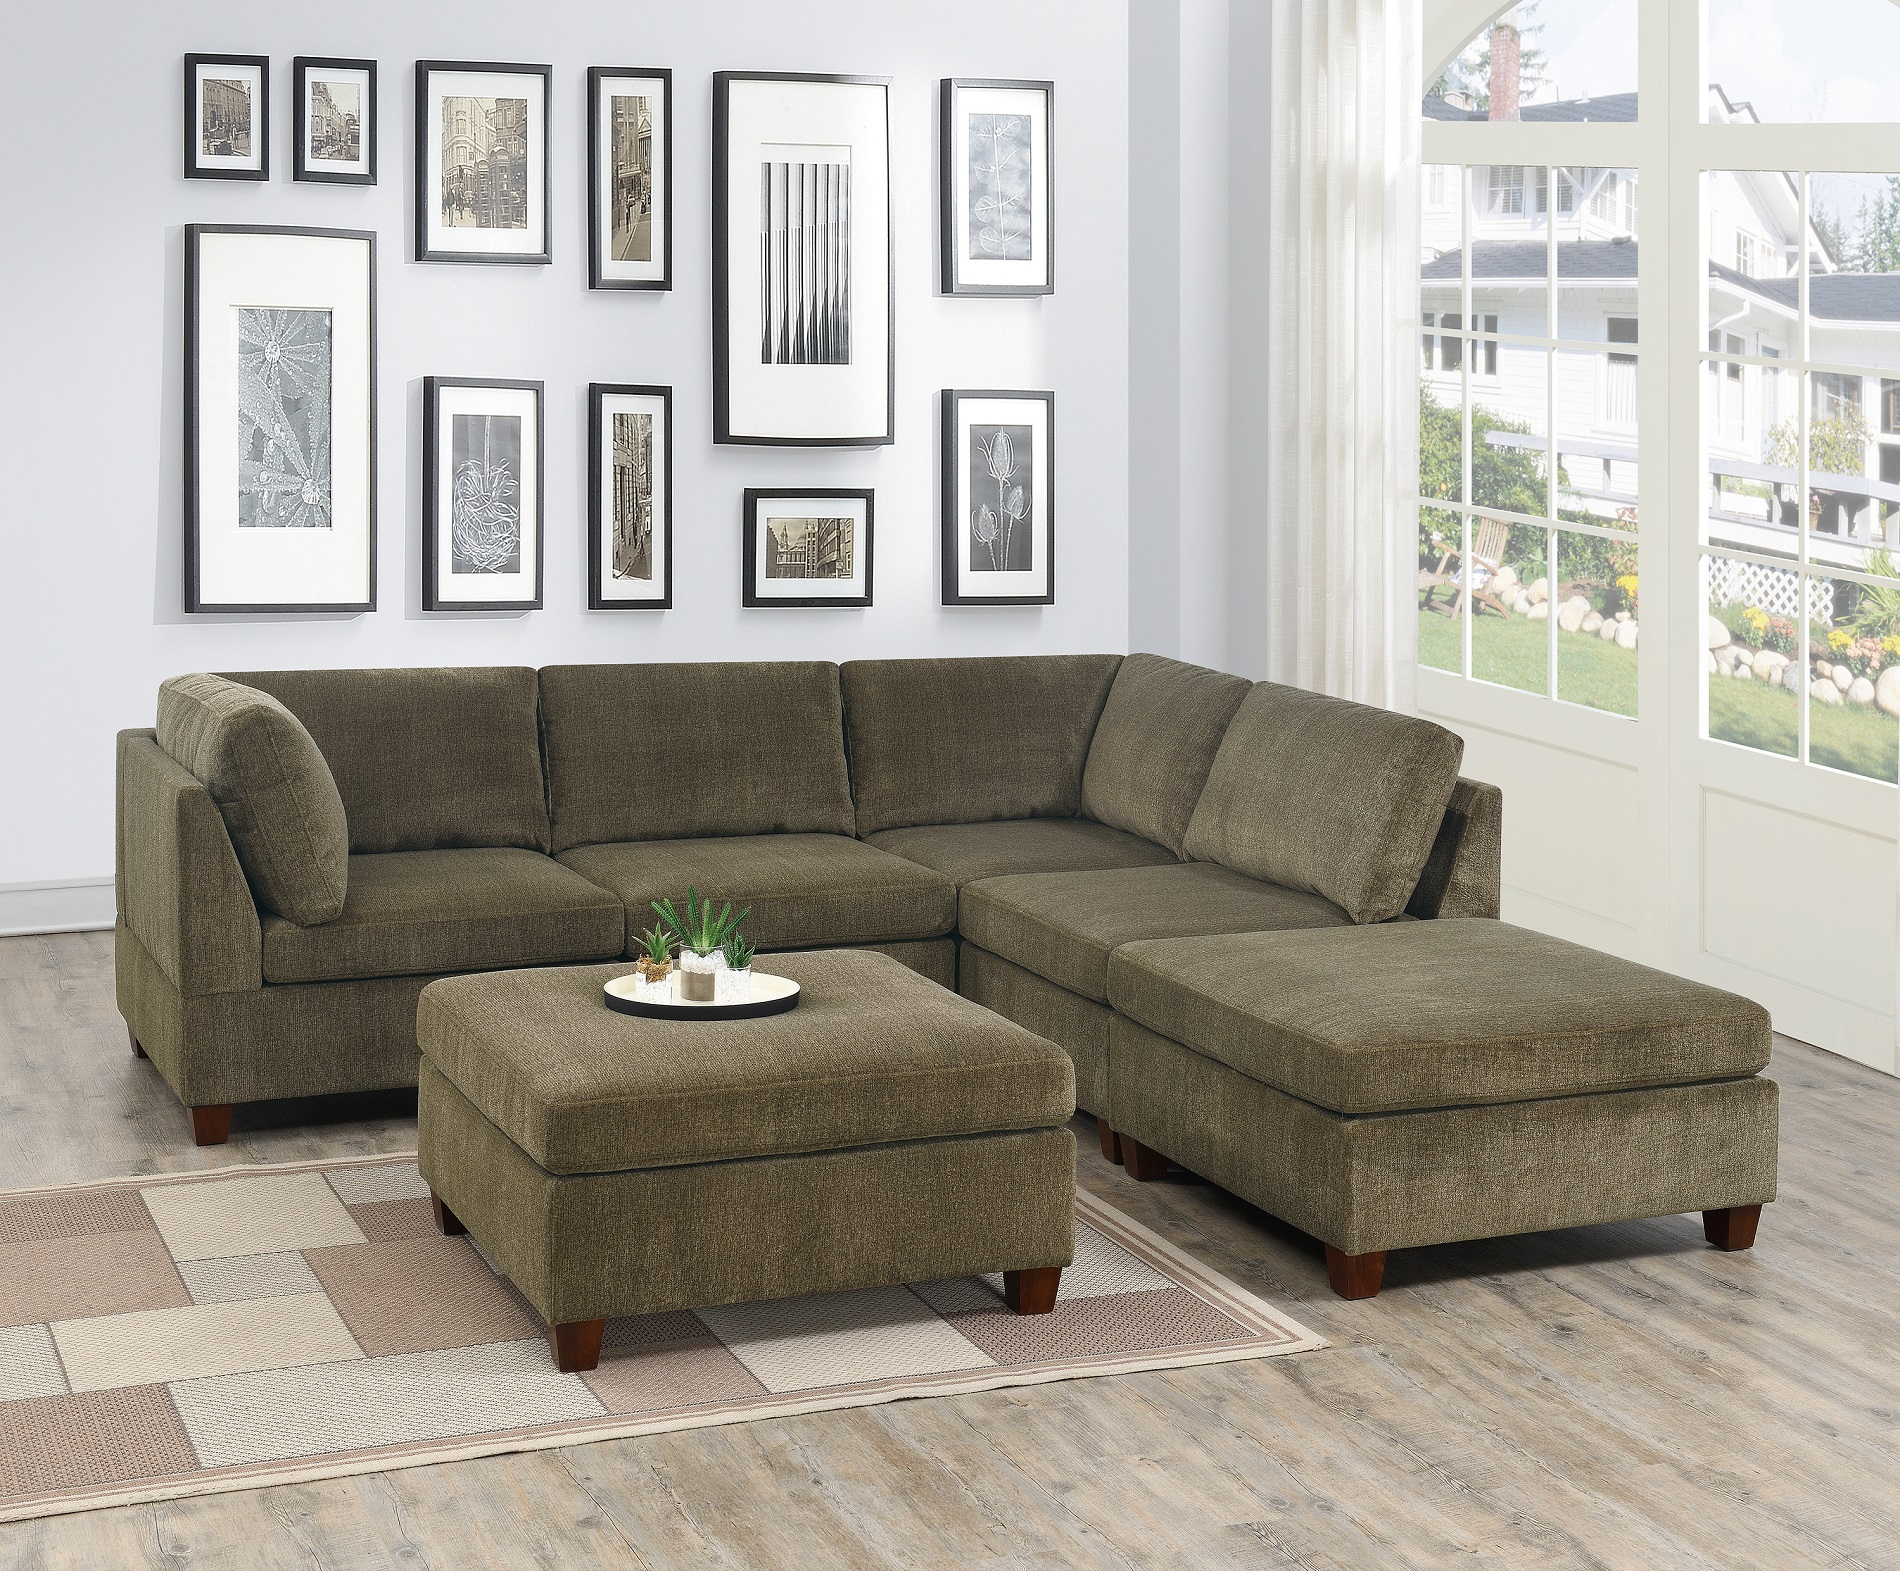 Contemporary Modern Unique Modular 6Pc Sectional Sofa Set Intended For Mireille Modern And Contemporary Fabric Upholstered Sectional Sofas (View 1 of 15)